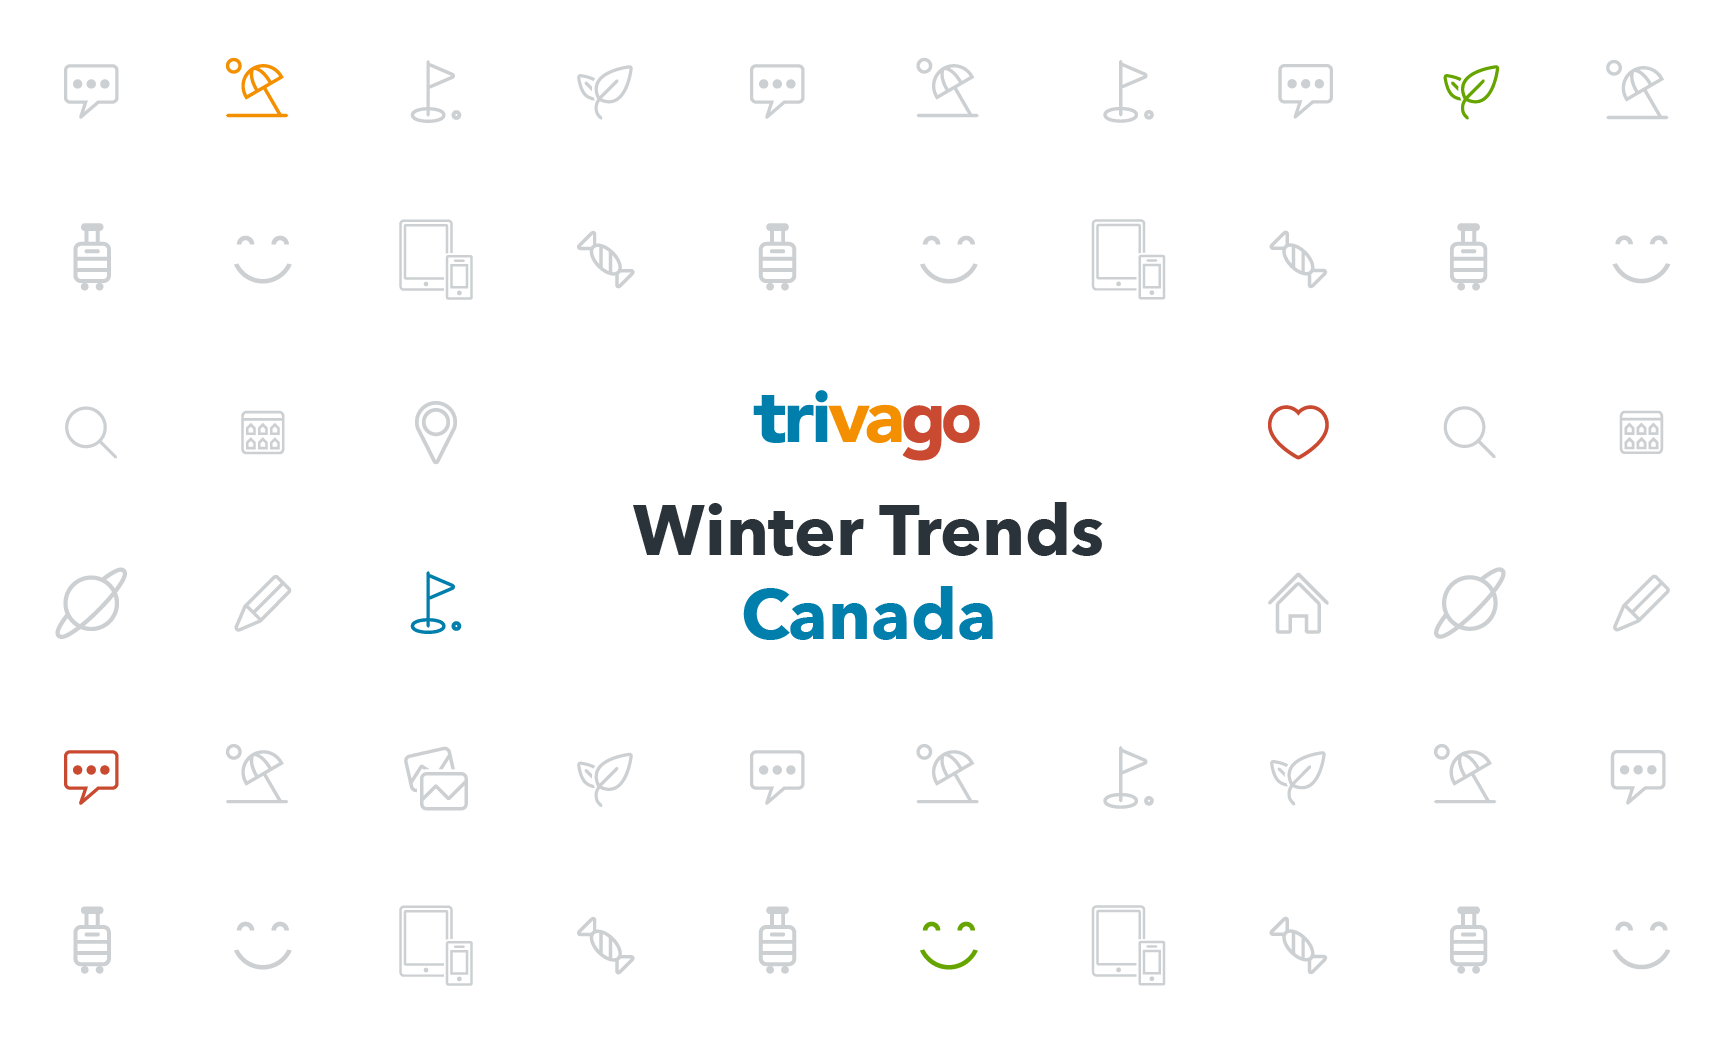 trivago releases Winter Trends for Canada